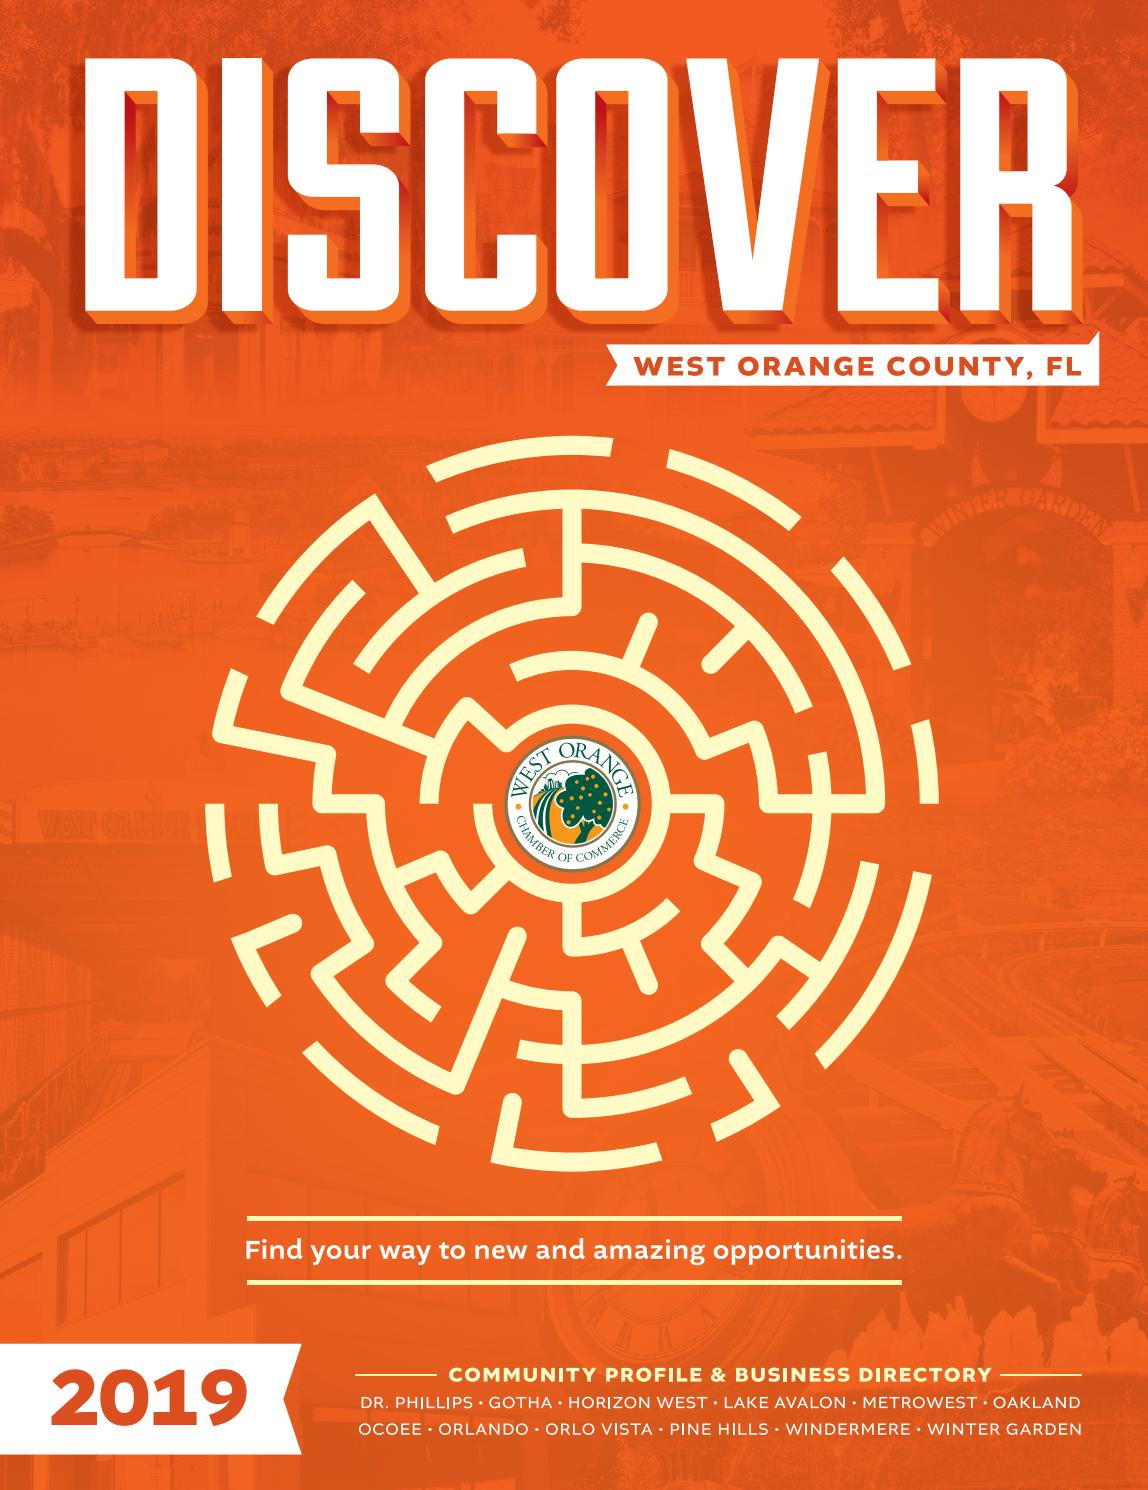 La Cucina Catering Britt Wetzel West Orange Chamber Discover 2019 By Orange Observer Issuu